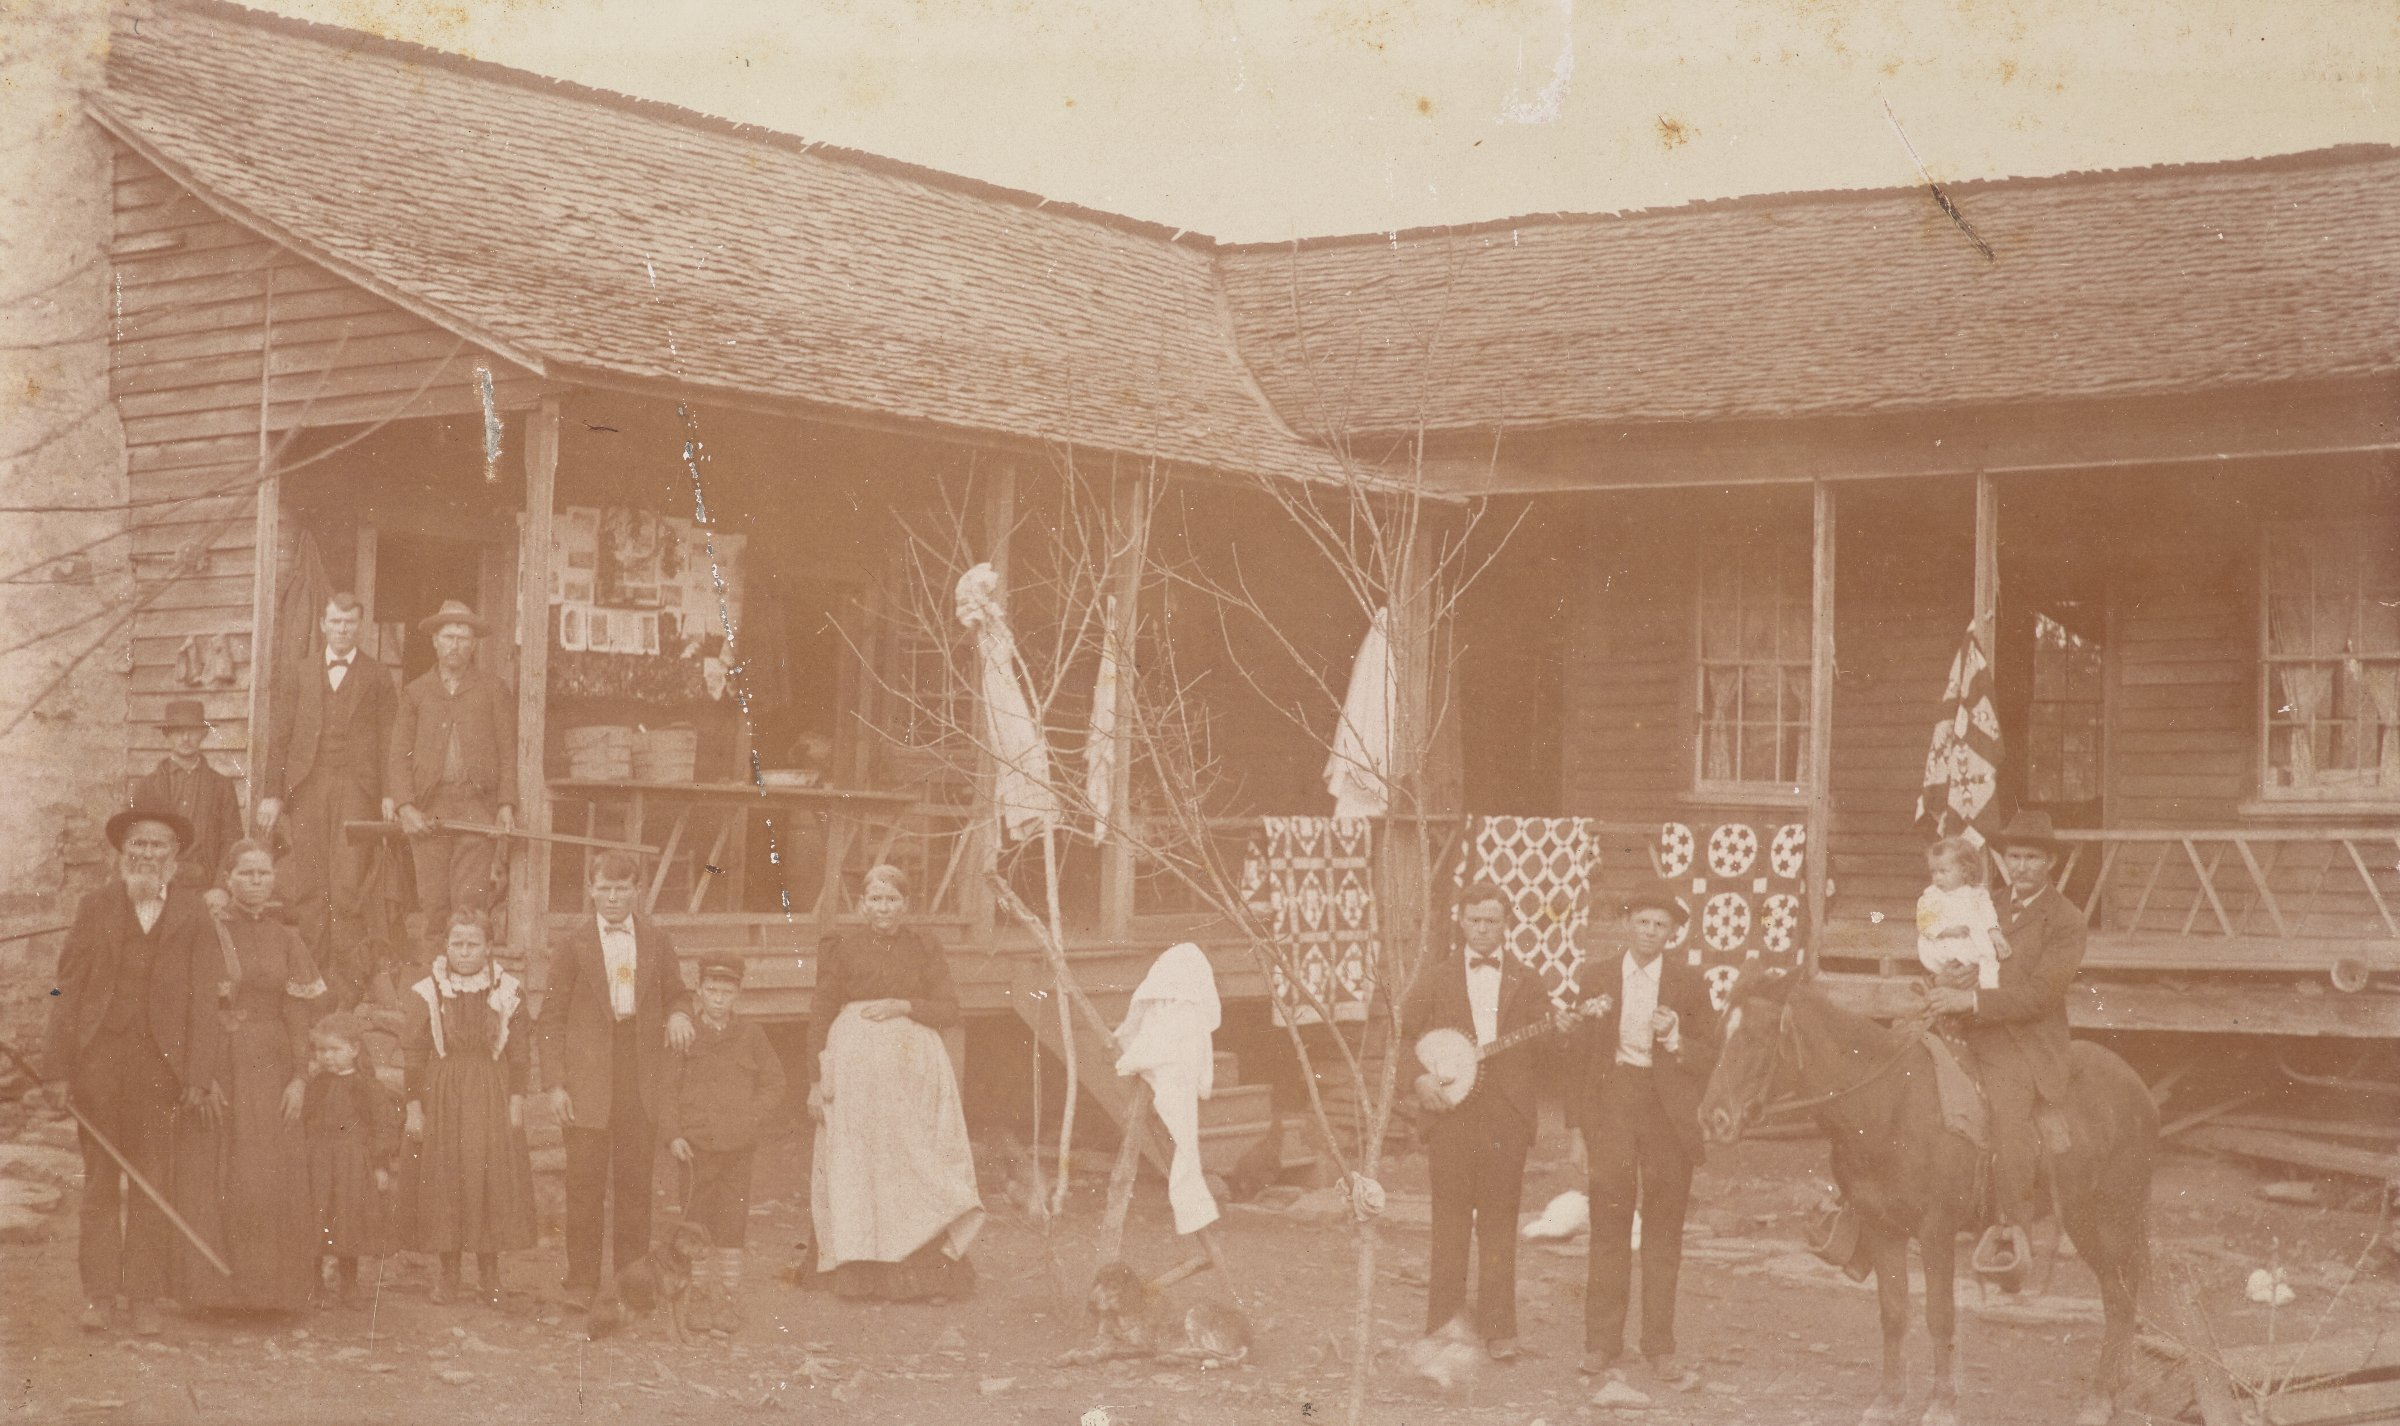 Photograph of the William Mabrey Thomas family, with Mary Ann Rouse Thomas wearing an apron, Nyota, Blount County, Alabama, 1899